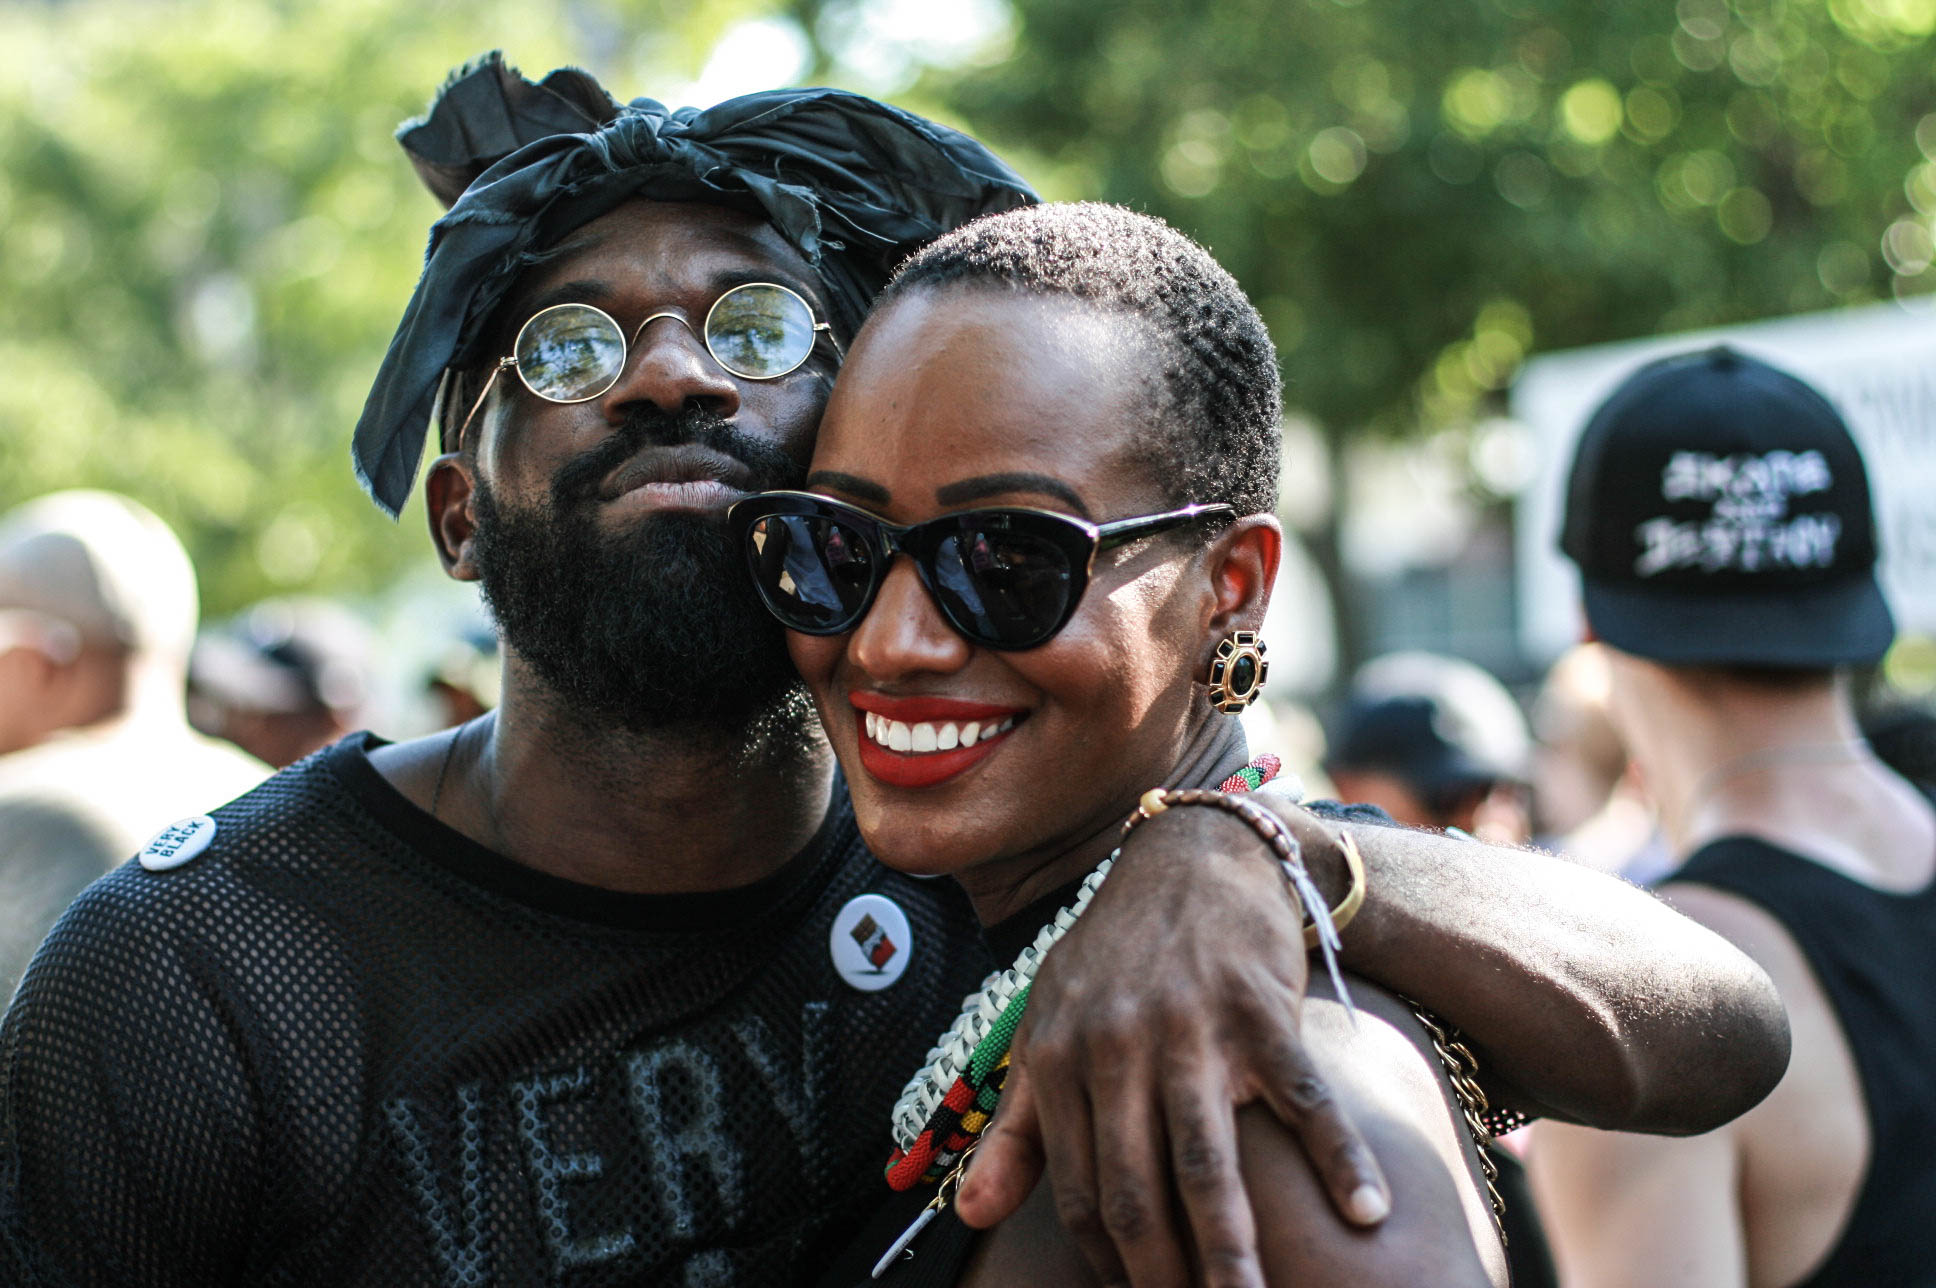 Andre D. Singleton creator of #veryblackproject at #afropunkfest .